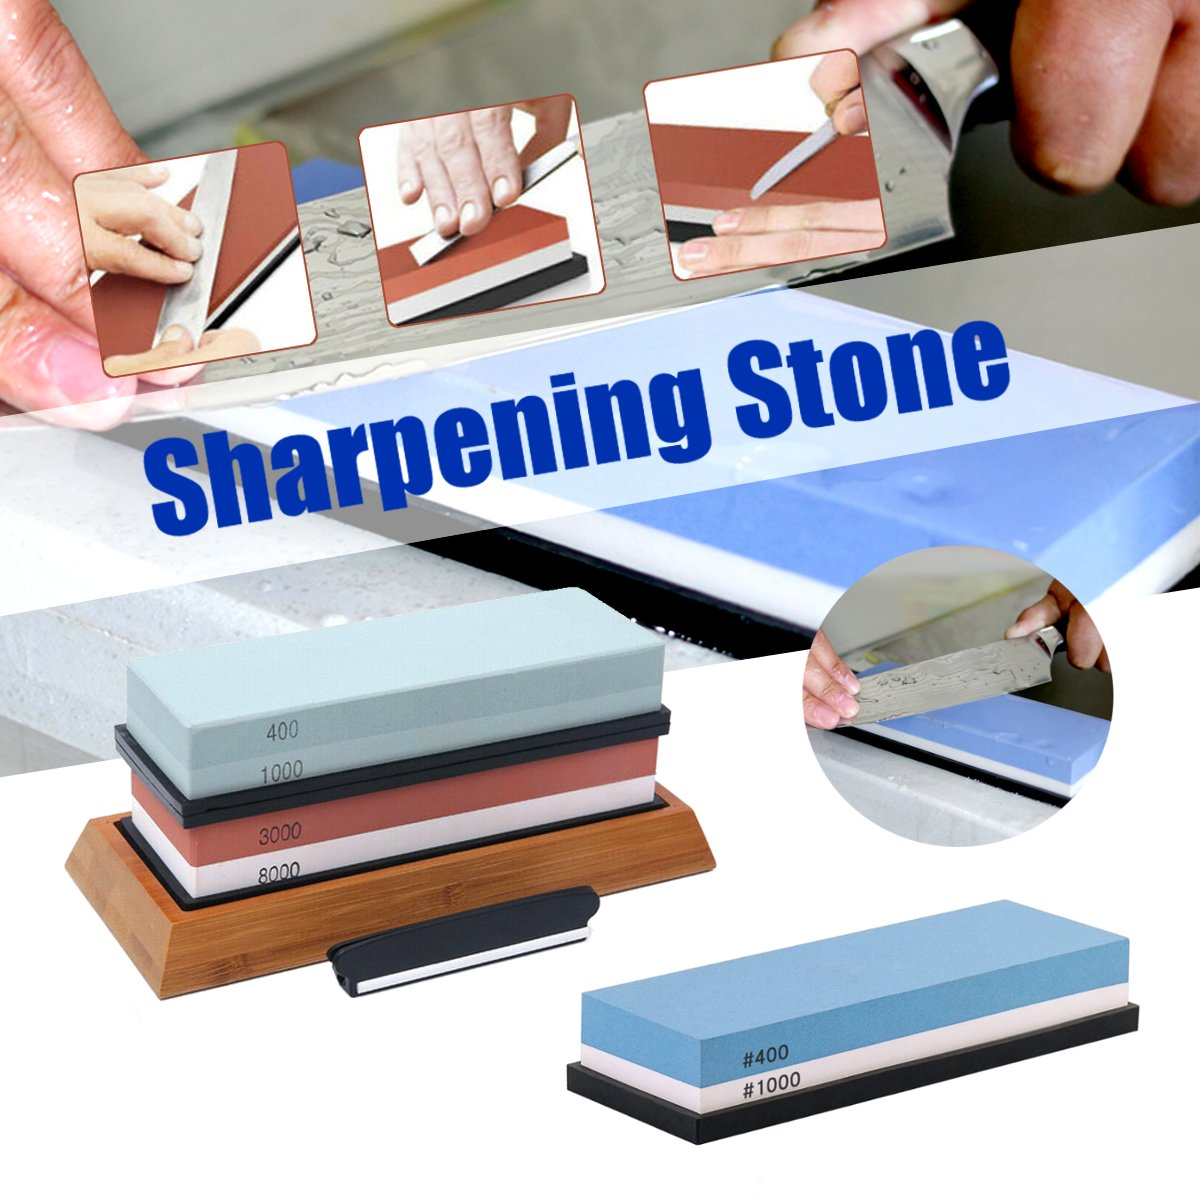 <font><b>3000</b></font>/<font><b>8000</b></font> / 400/1000 <font><b>Grit</b></font> Professional Knife Sharpener Sharpening Stone For A Knife Stone Whetstone Honing Oilstone Water Stones image